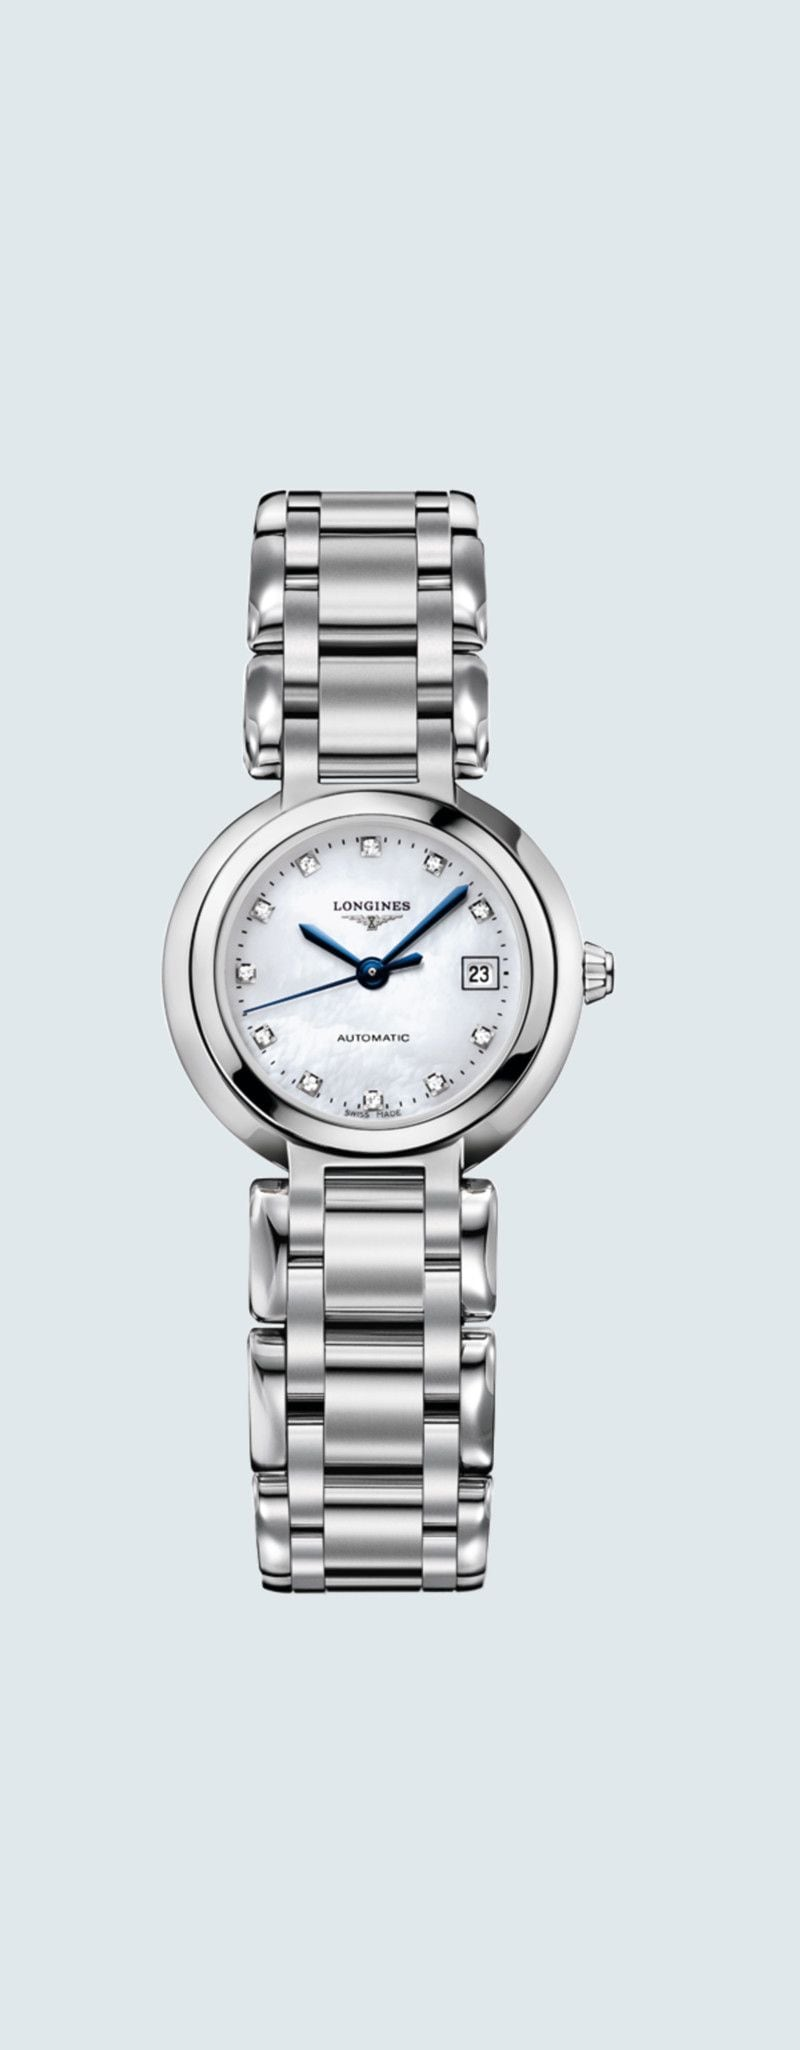 26.50 mm Stainless steel case with White mother-of-pearl dial and Stainless steel strap - case zoom